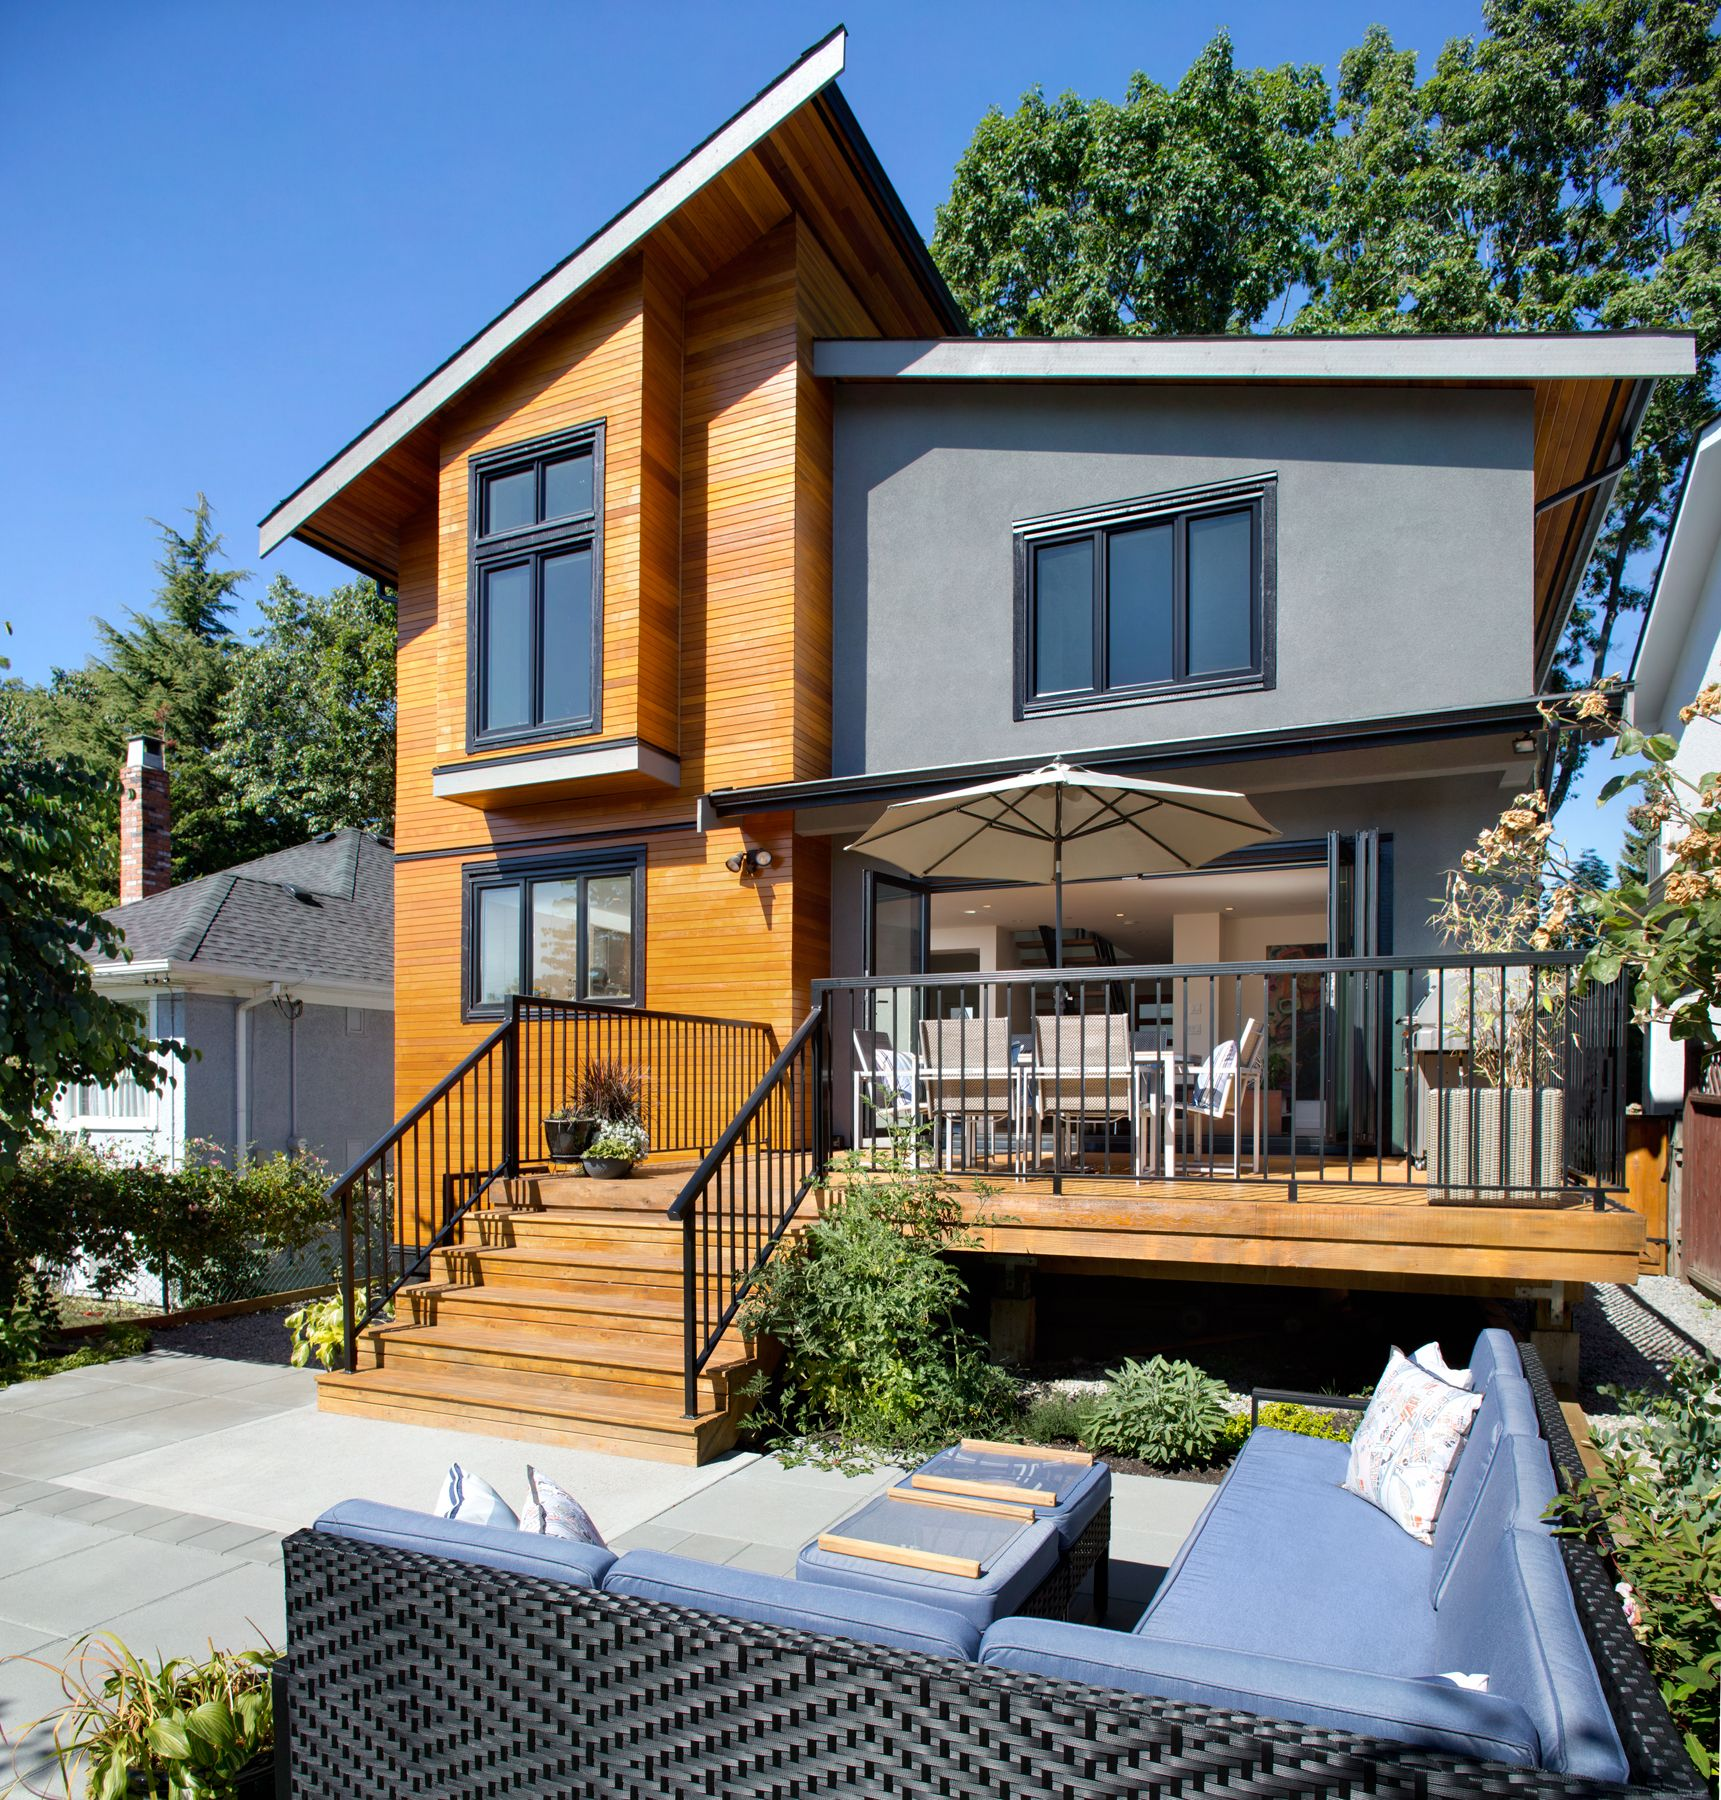 Vancouver Bc Home Total Overhaul Rear View After